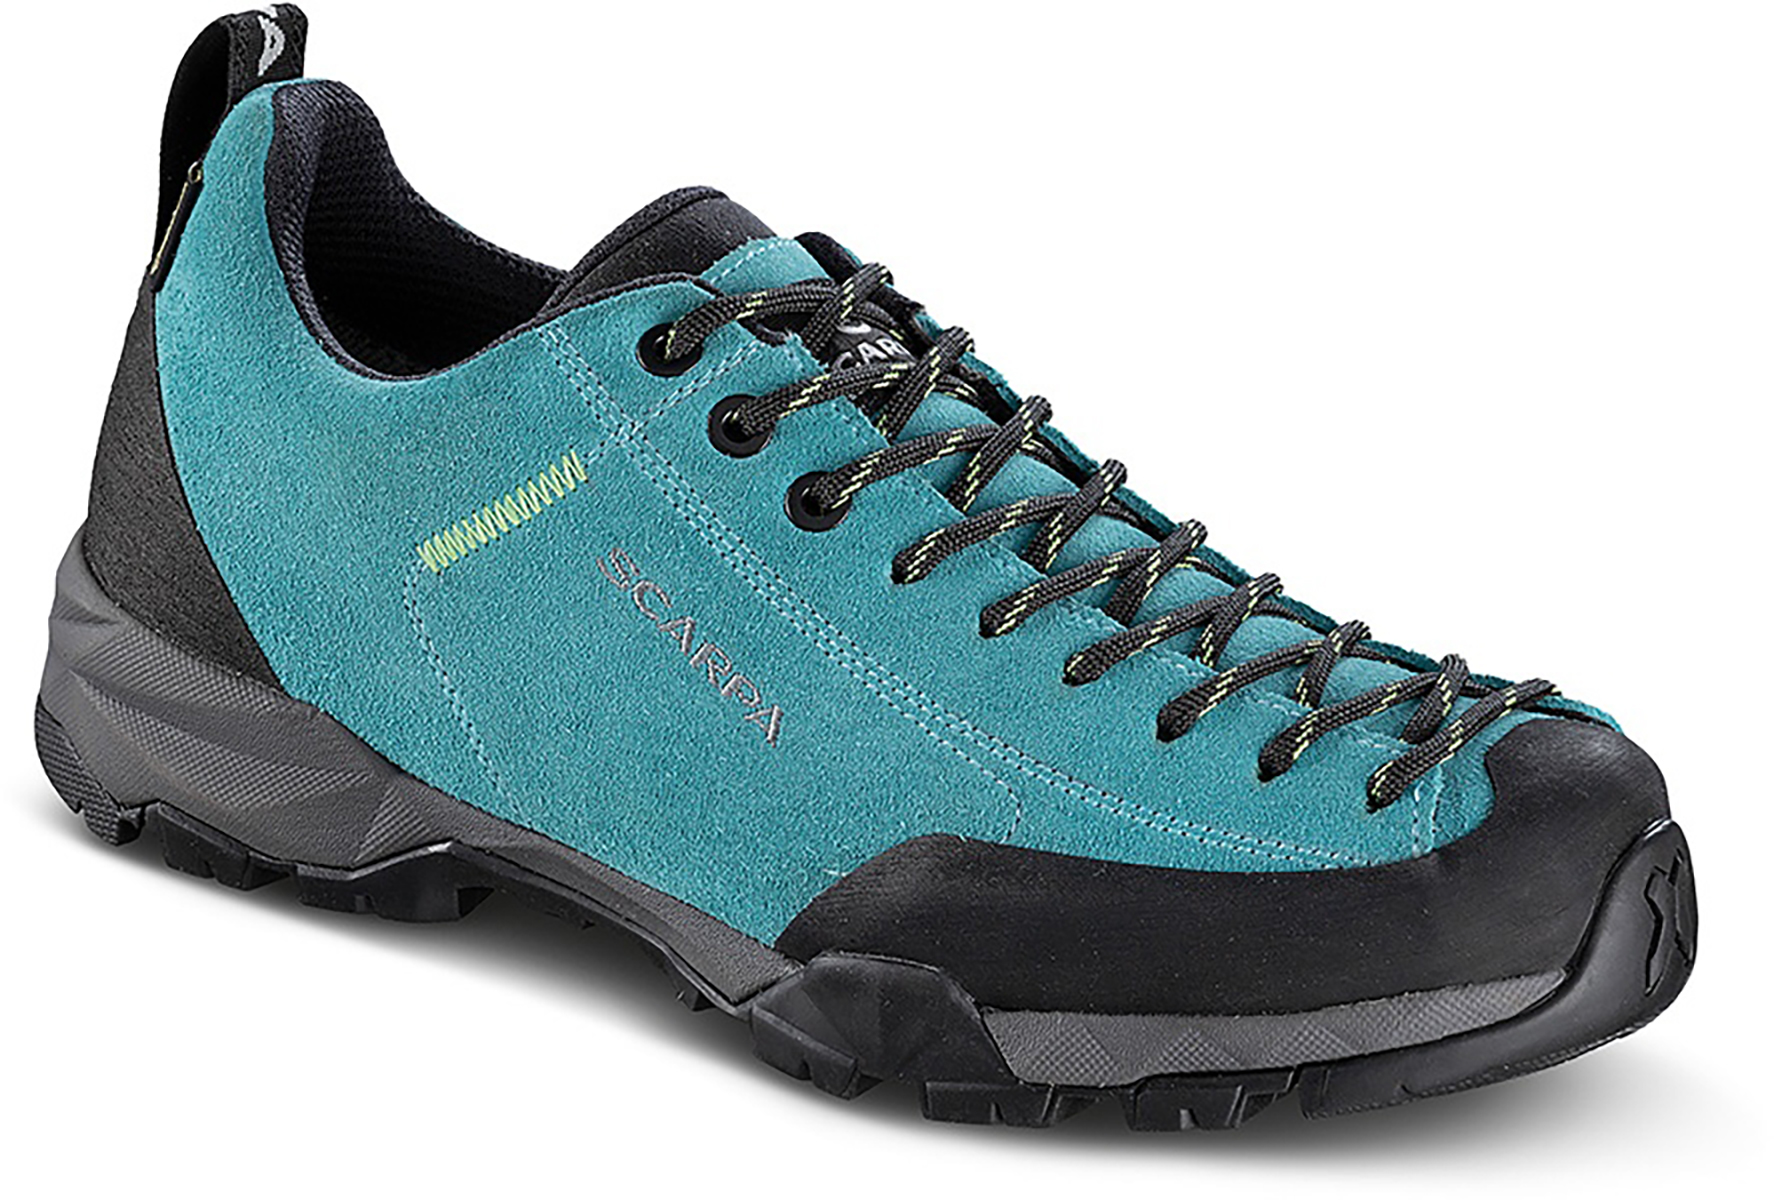 Scarpa Women's Mojito Trail Gore-Tex® Shoes | Shoes and overlays